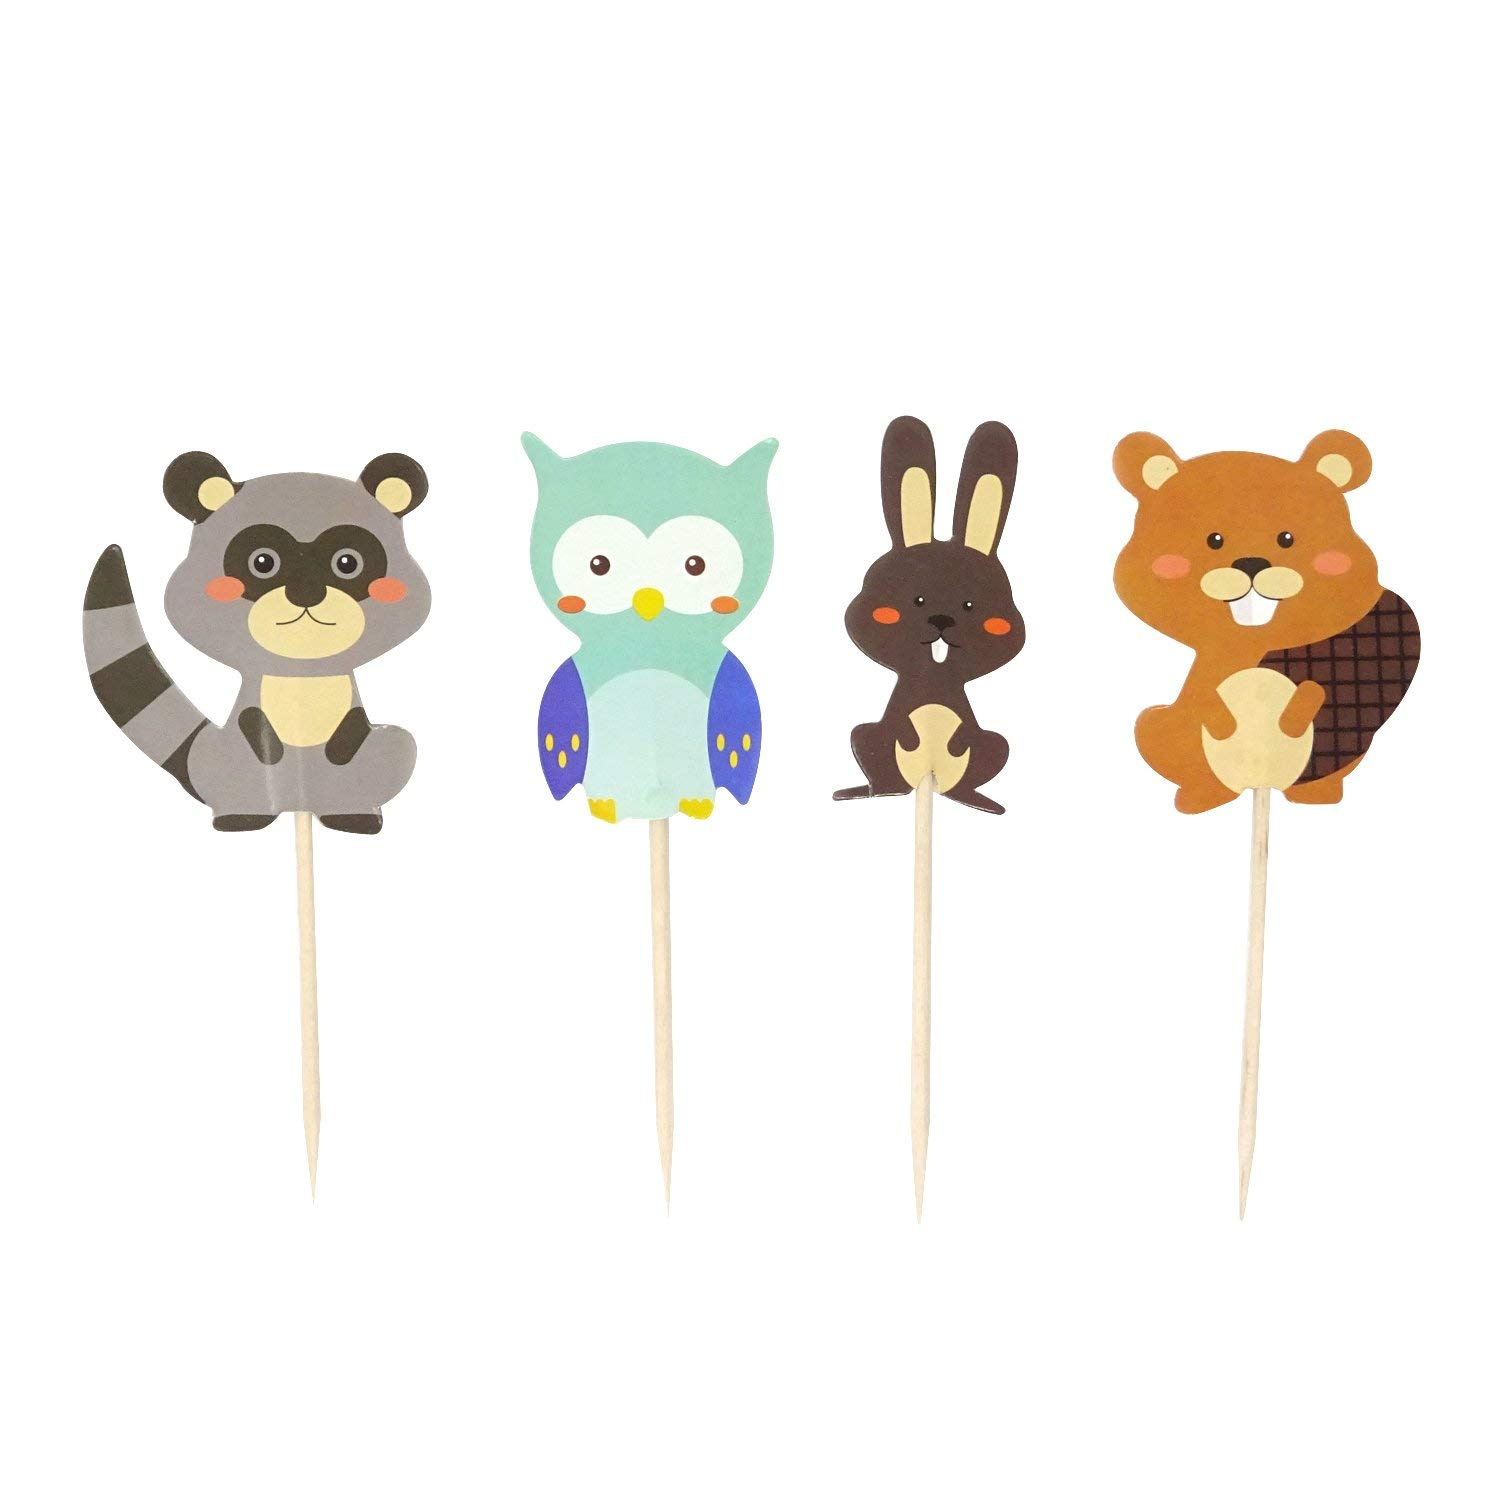 Honbay 48PCS Cute Woodland Creatures Theme Dessert Muffin Cake Cupcake Toppers Picks Forest Animal Friends Cake Decoration,Rabbit, Squirrel, Racoon and Owl